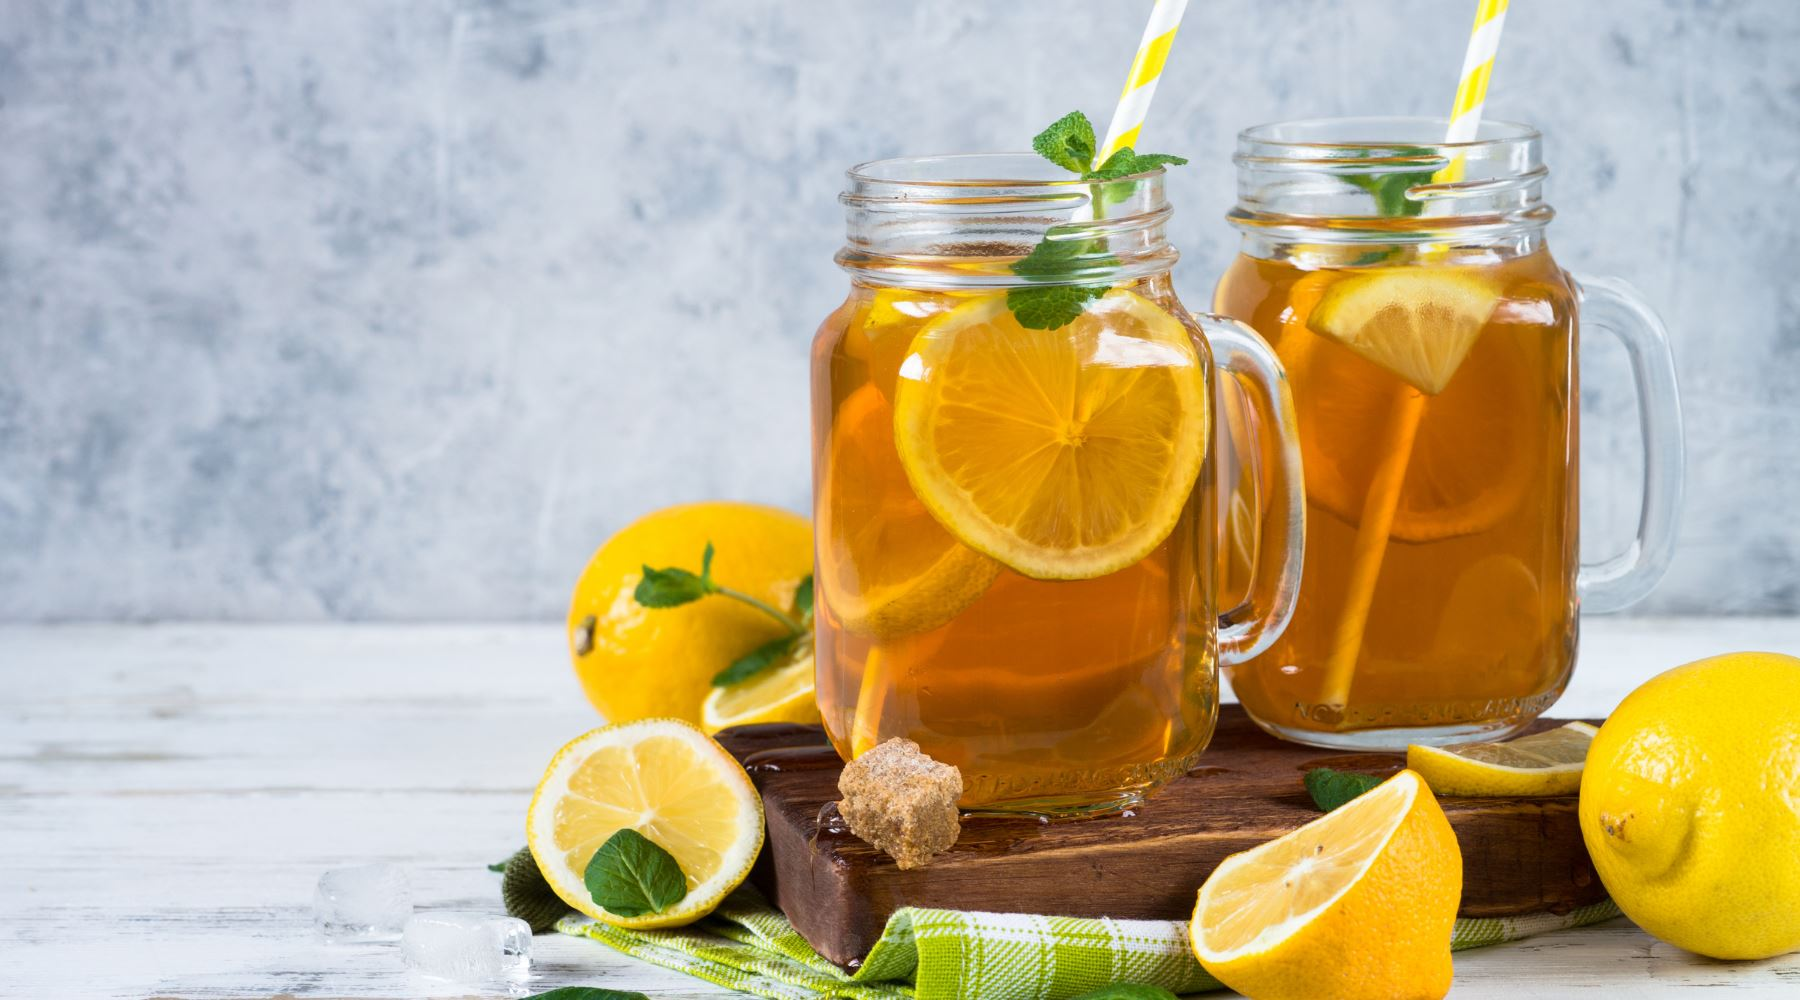 How to Make Iced Tea with Tea Bags: Step-by-Step Guide